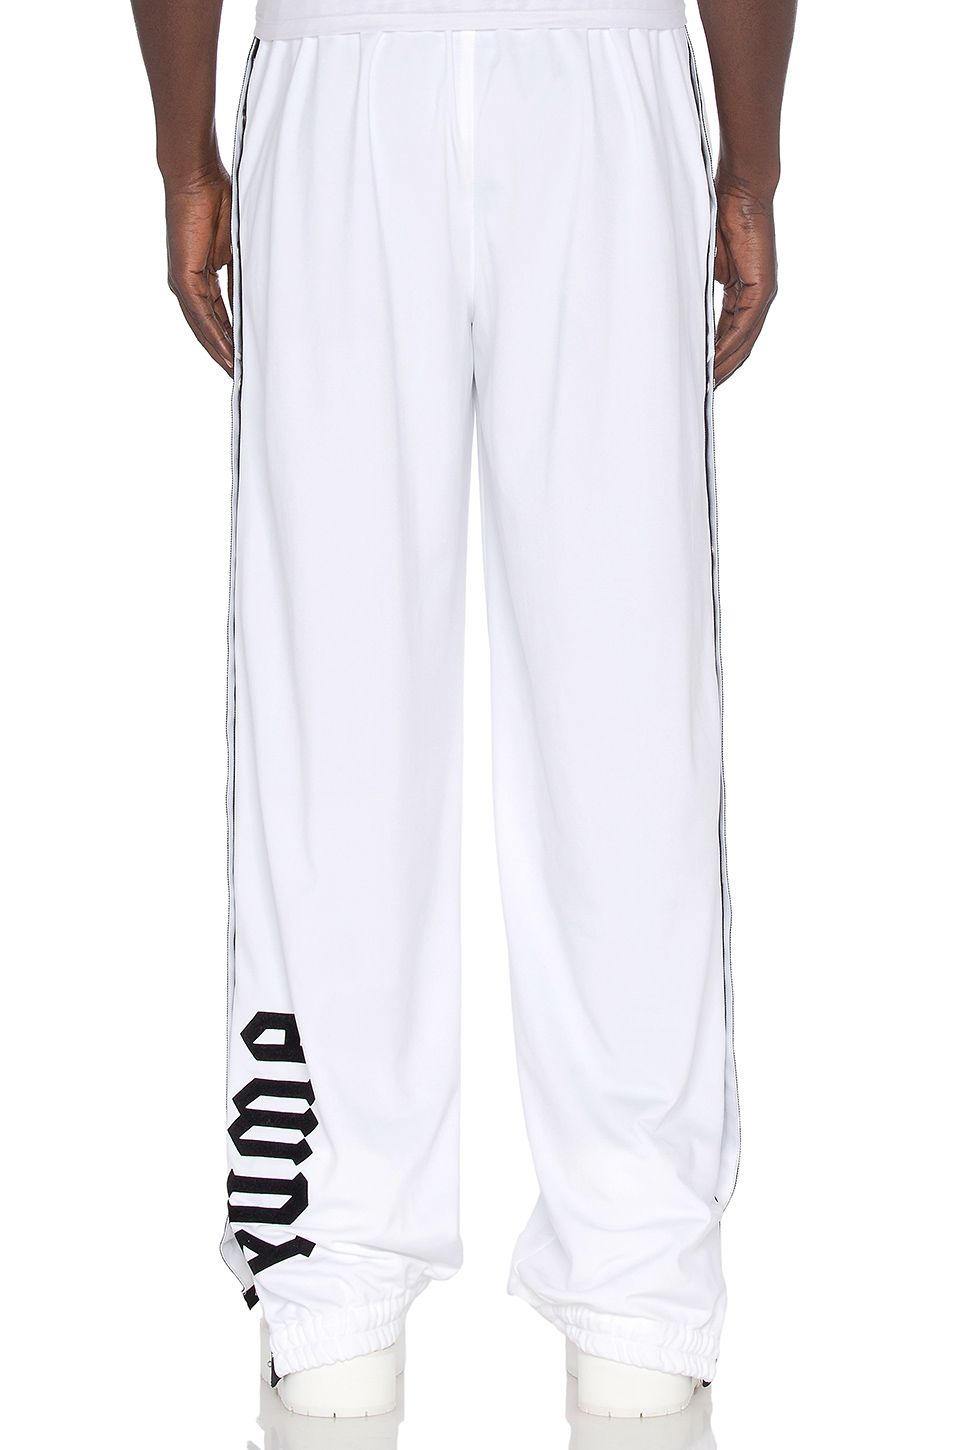 Puma Tear Away Track Pants In White For Men Lyst